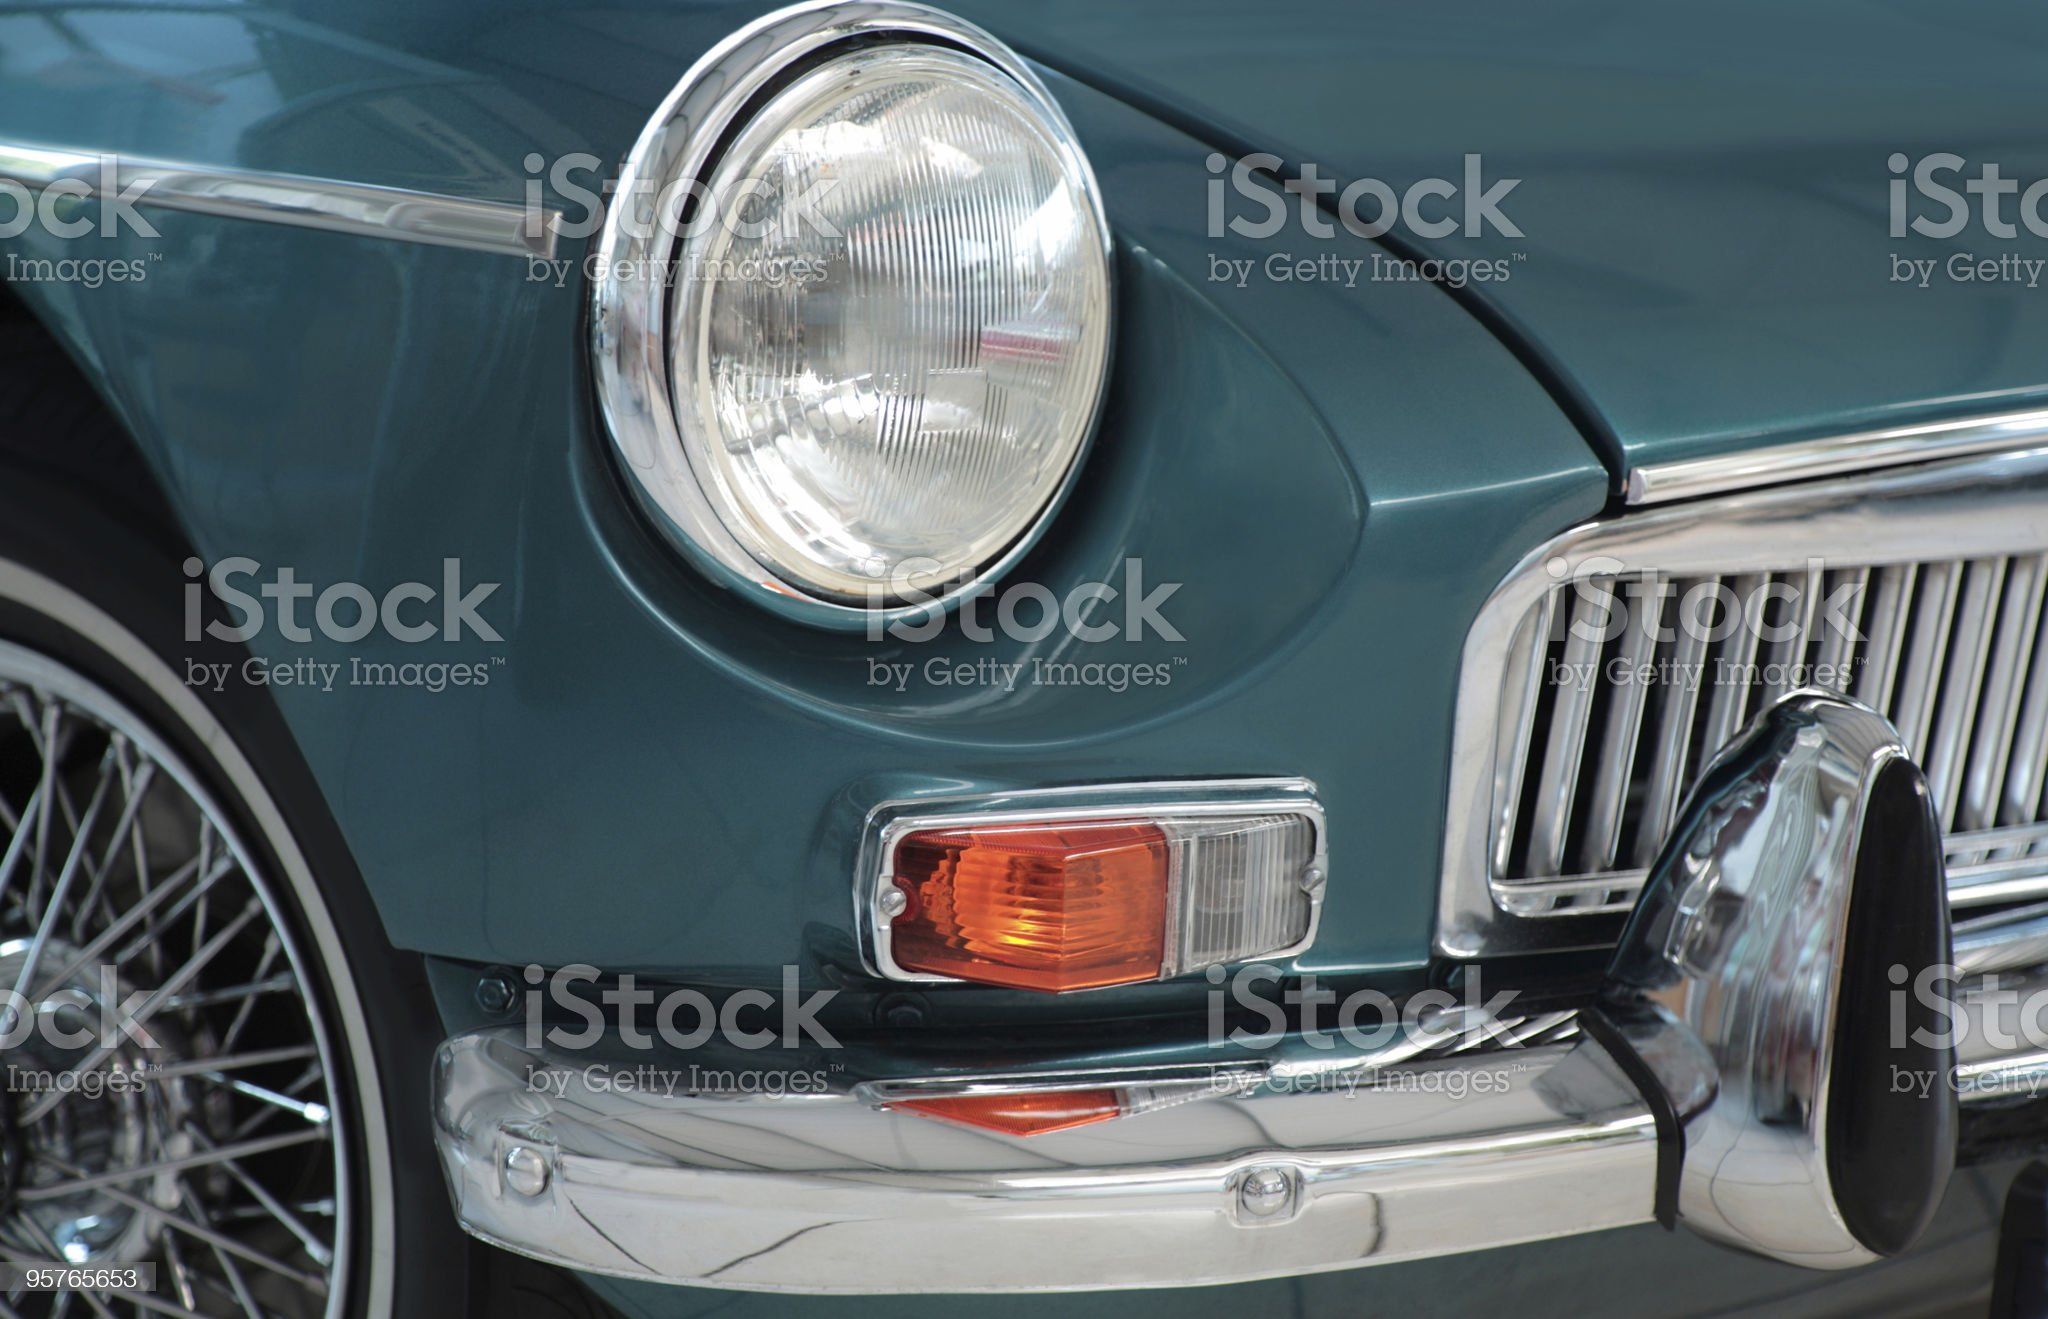 Classic Sports Car royalty-free stock photo